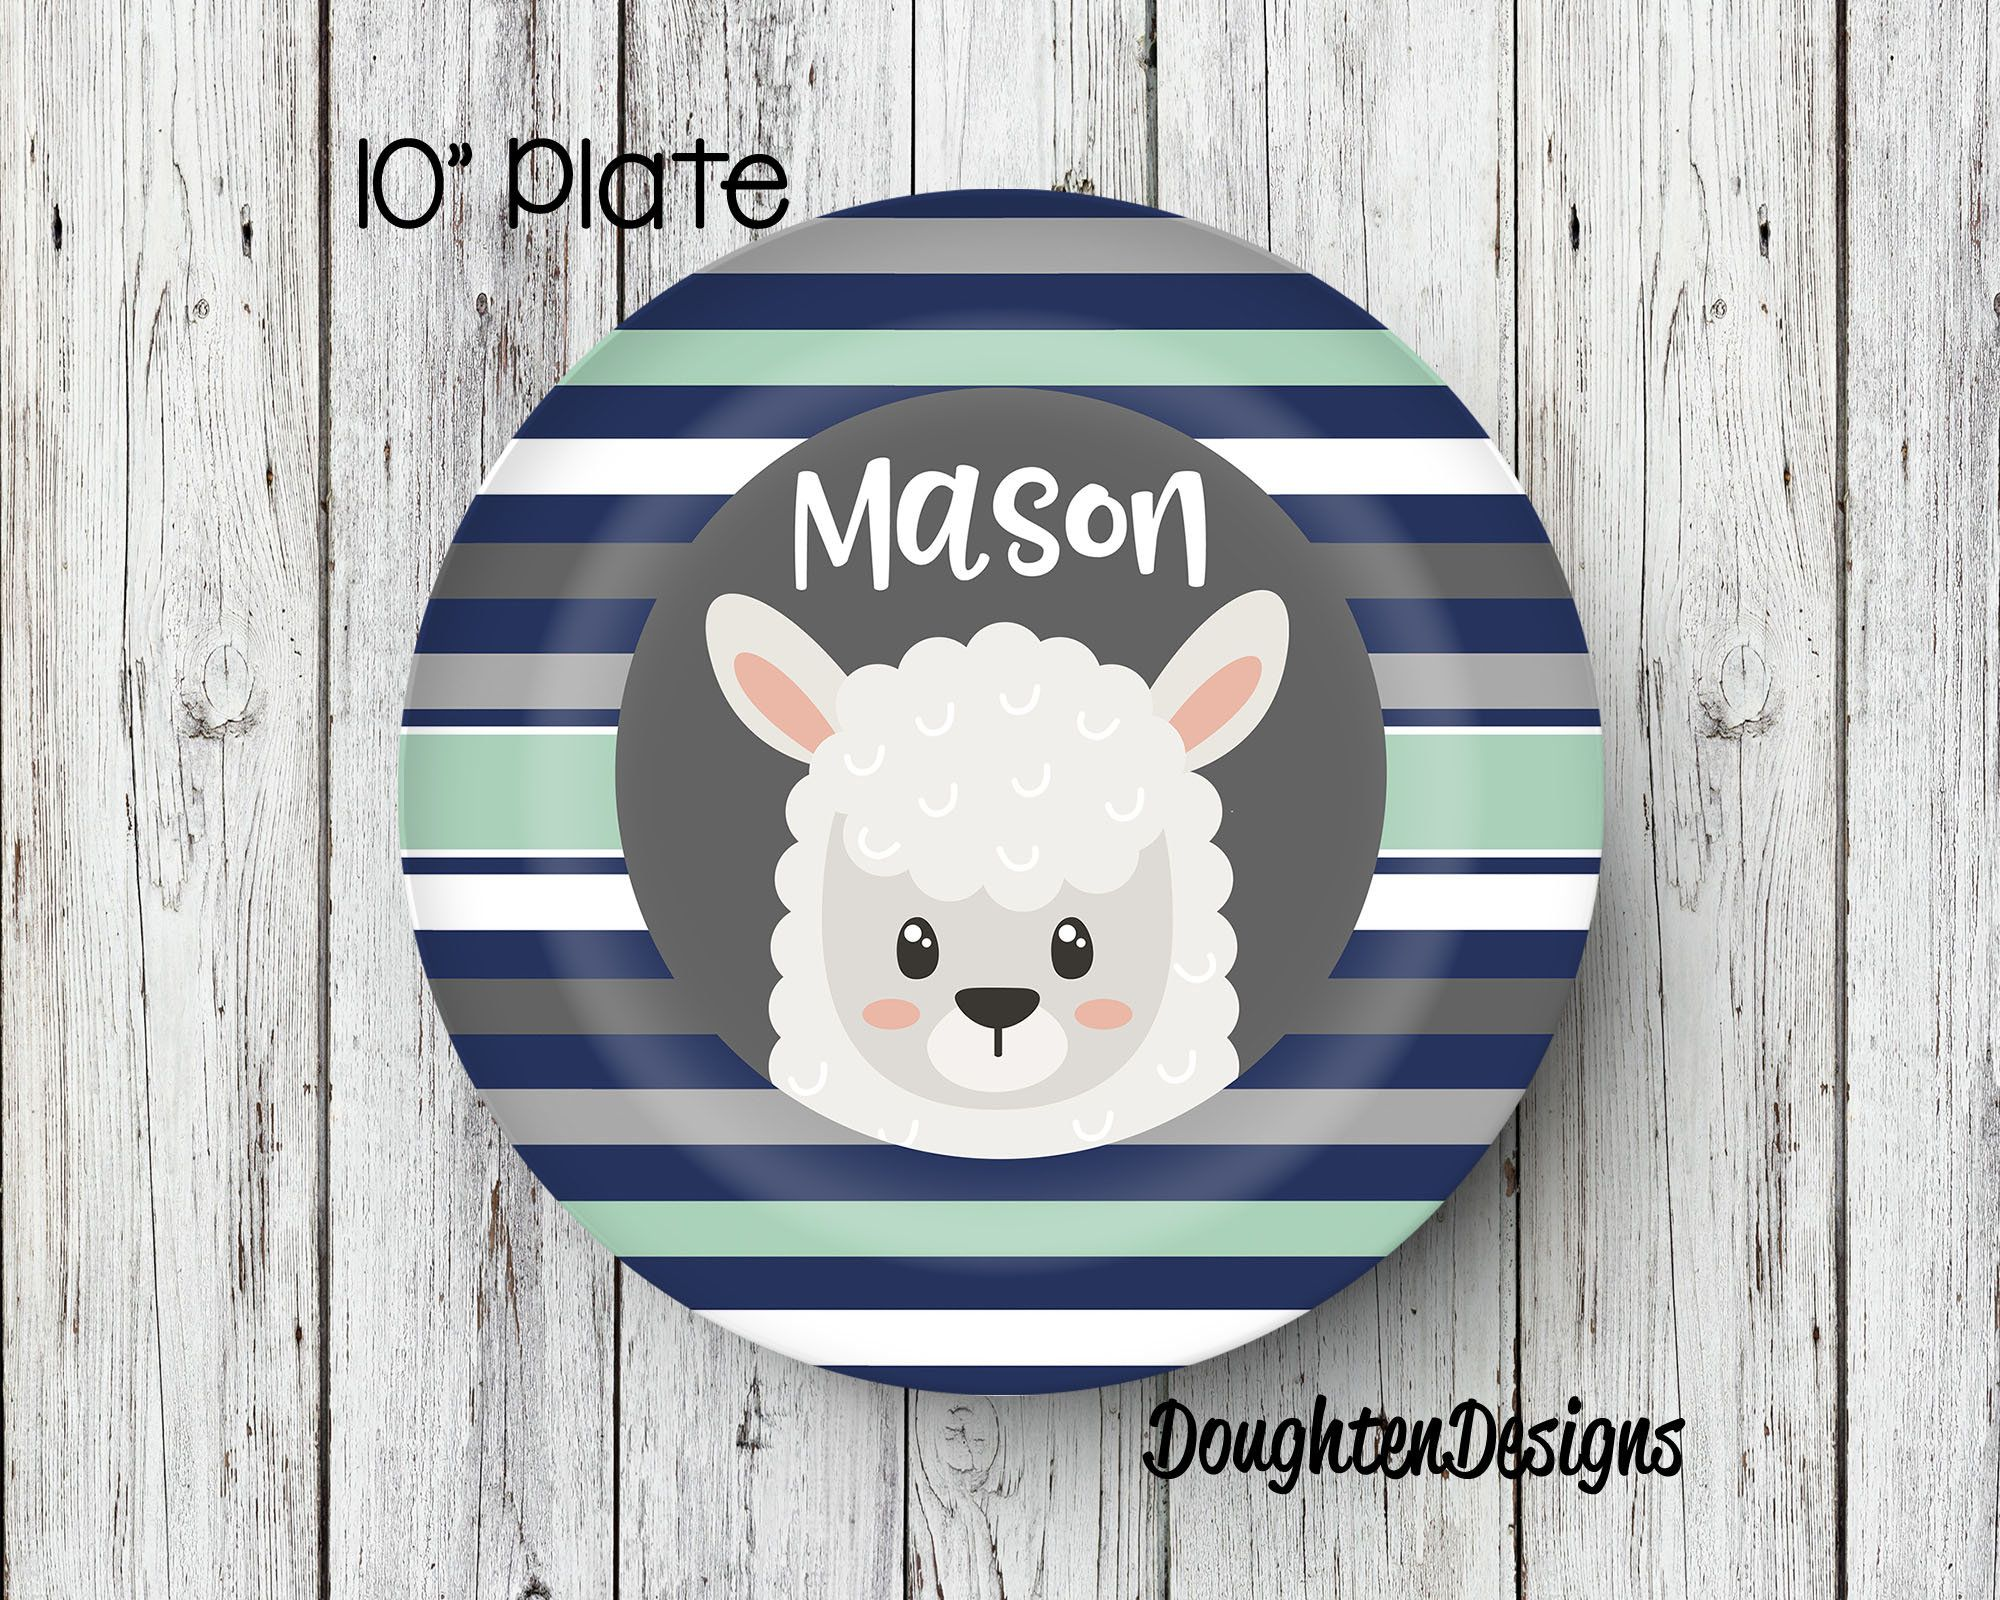 Llama Plate Alpaca plate Personalized Name Plate Personalized Melamine Plate Kids Dinner  sc 1 st  Pinterest & Llama Plate Alpaca plate Personalized Name Plate Personalized ...